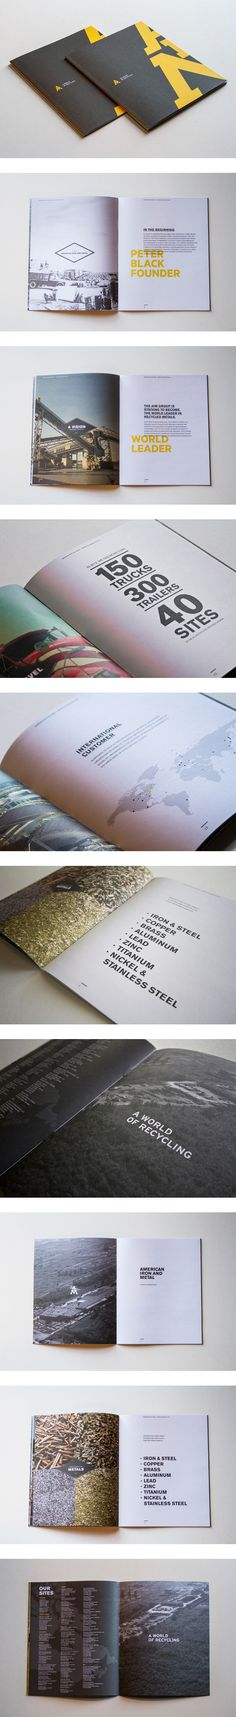 Design brochure layout annual reports 44 ideas for 2019 Design Brochure, Booklet Design, Brochure Layout, Graphic Design Layouts, Graphic Design Inspiration, Layout Design, Text Layout, Editorial Design, Editorial Layout